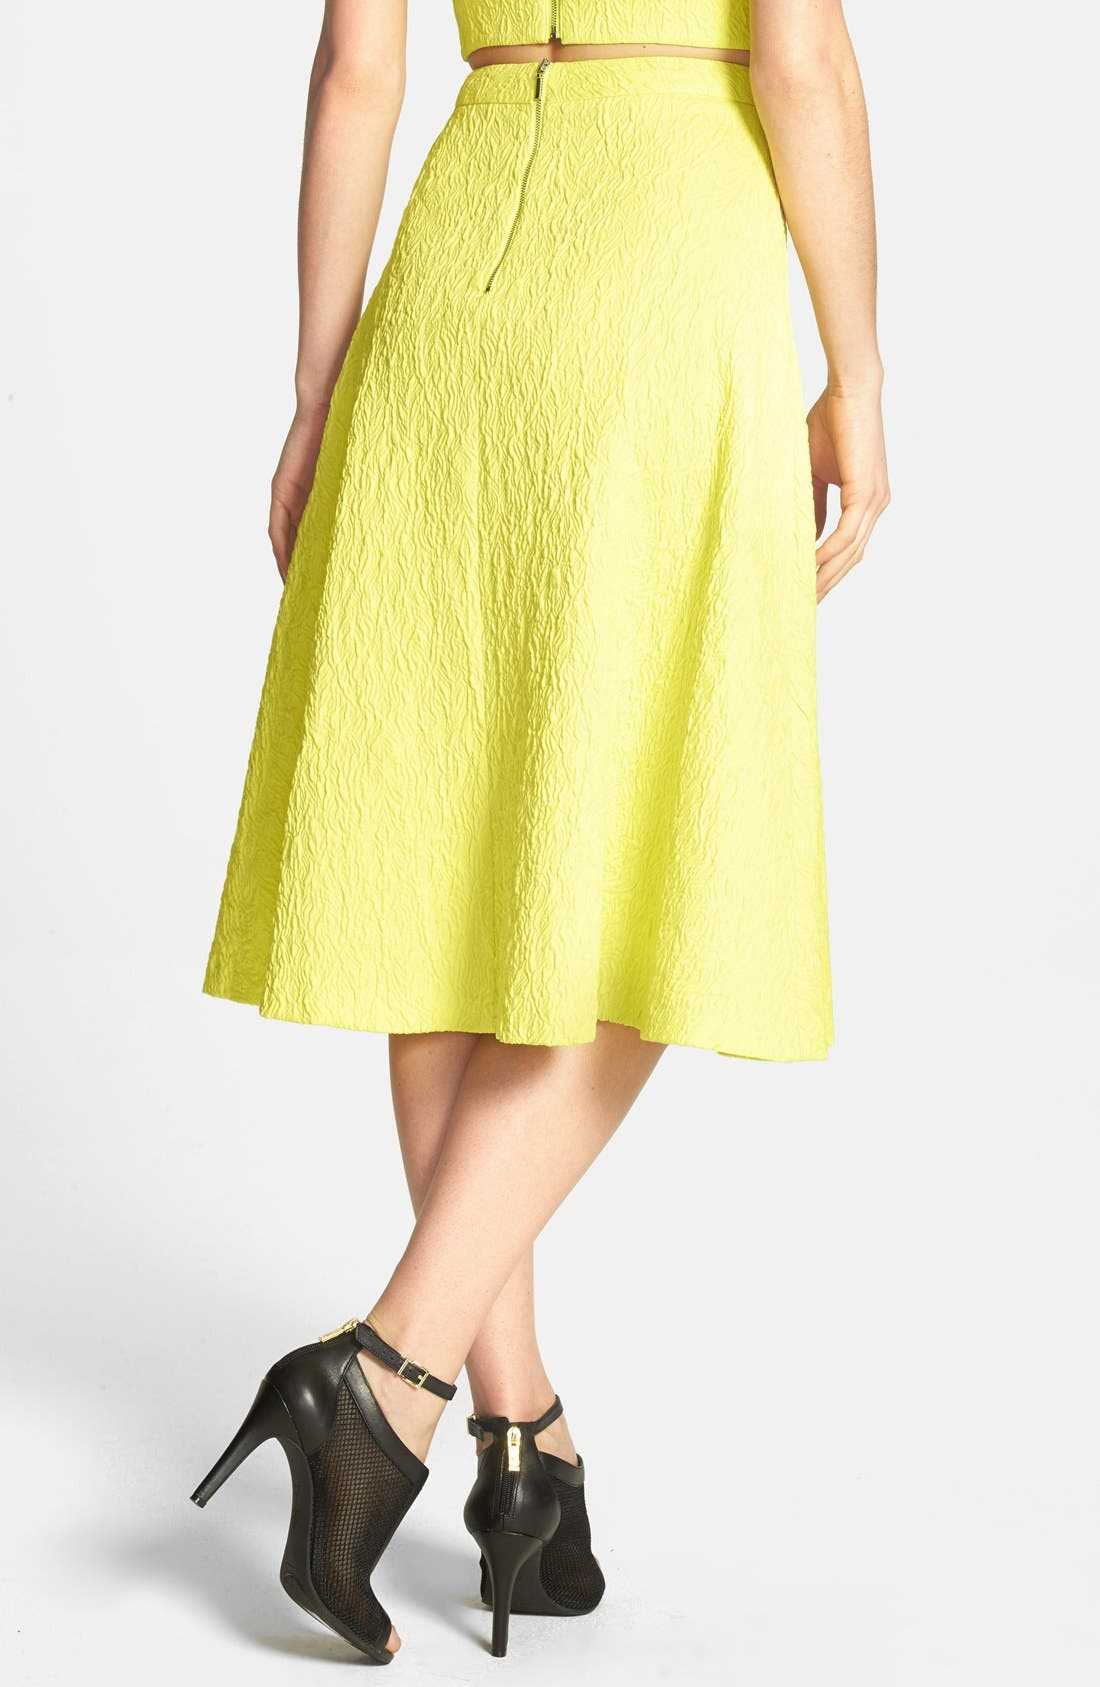 JOA Textured A-Line Midi Skirt,                             Alternate thumbnail 2, color,                             725